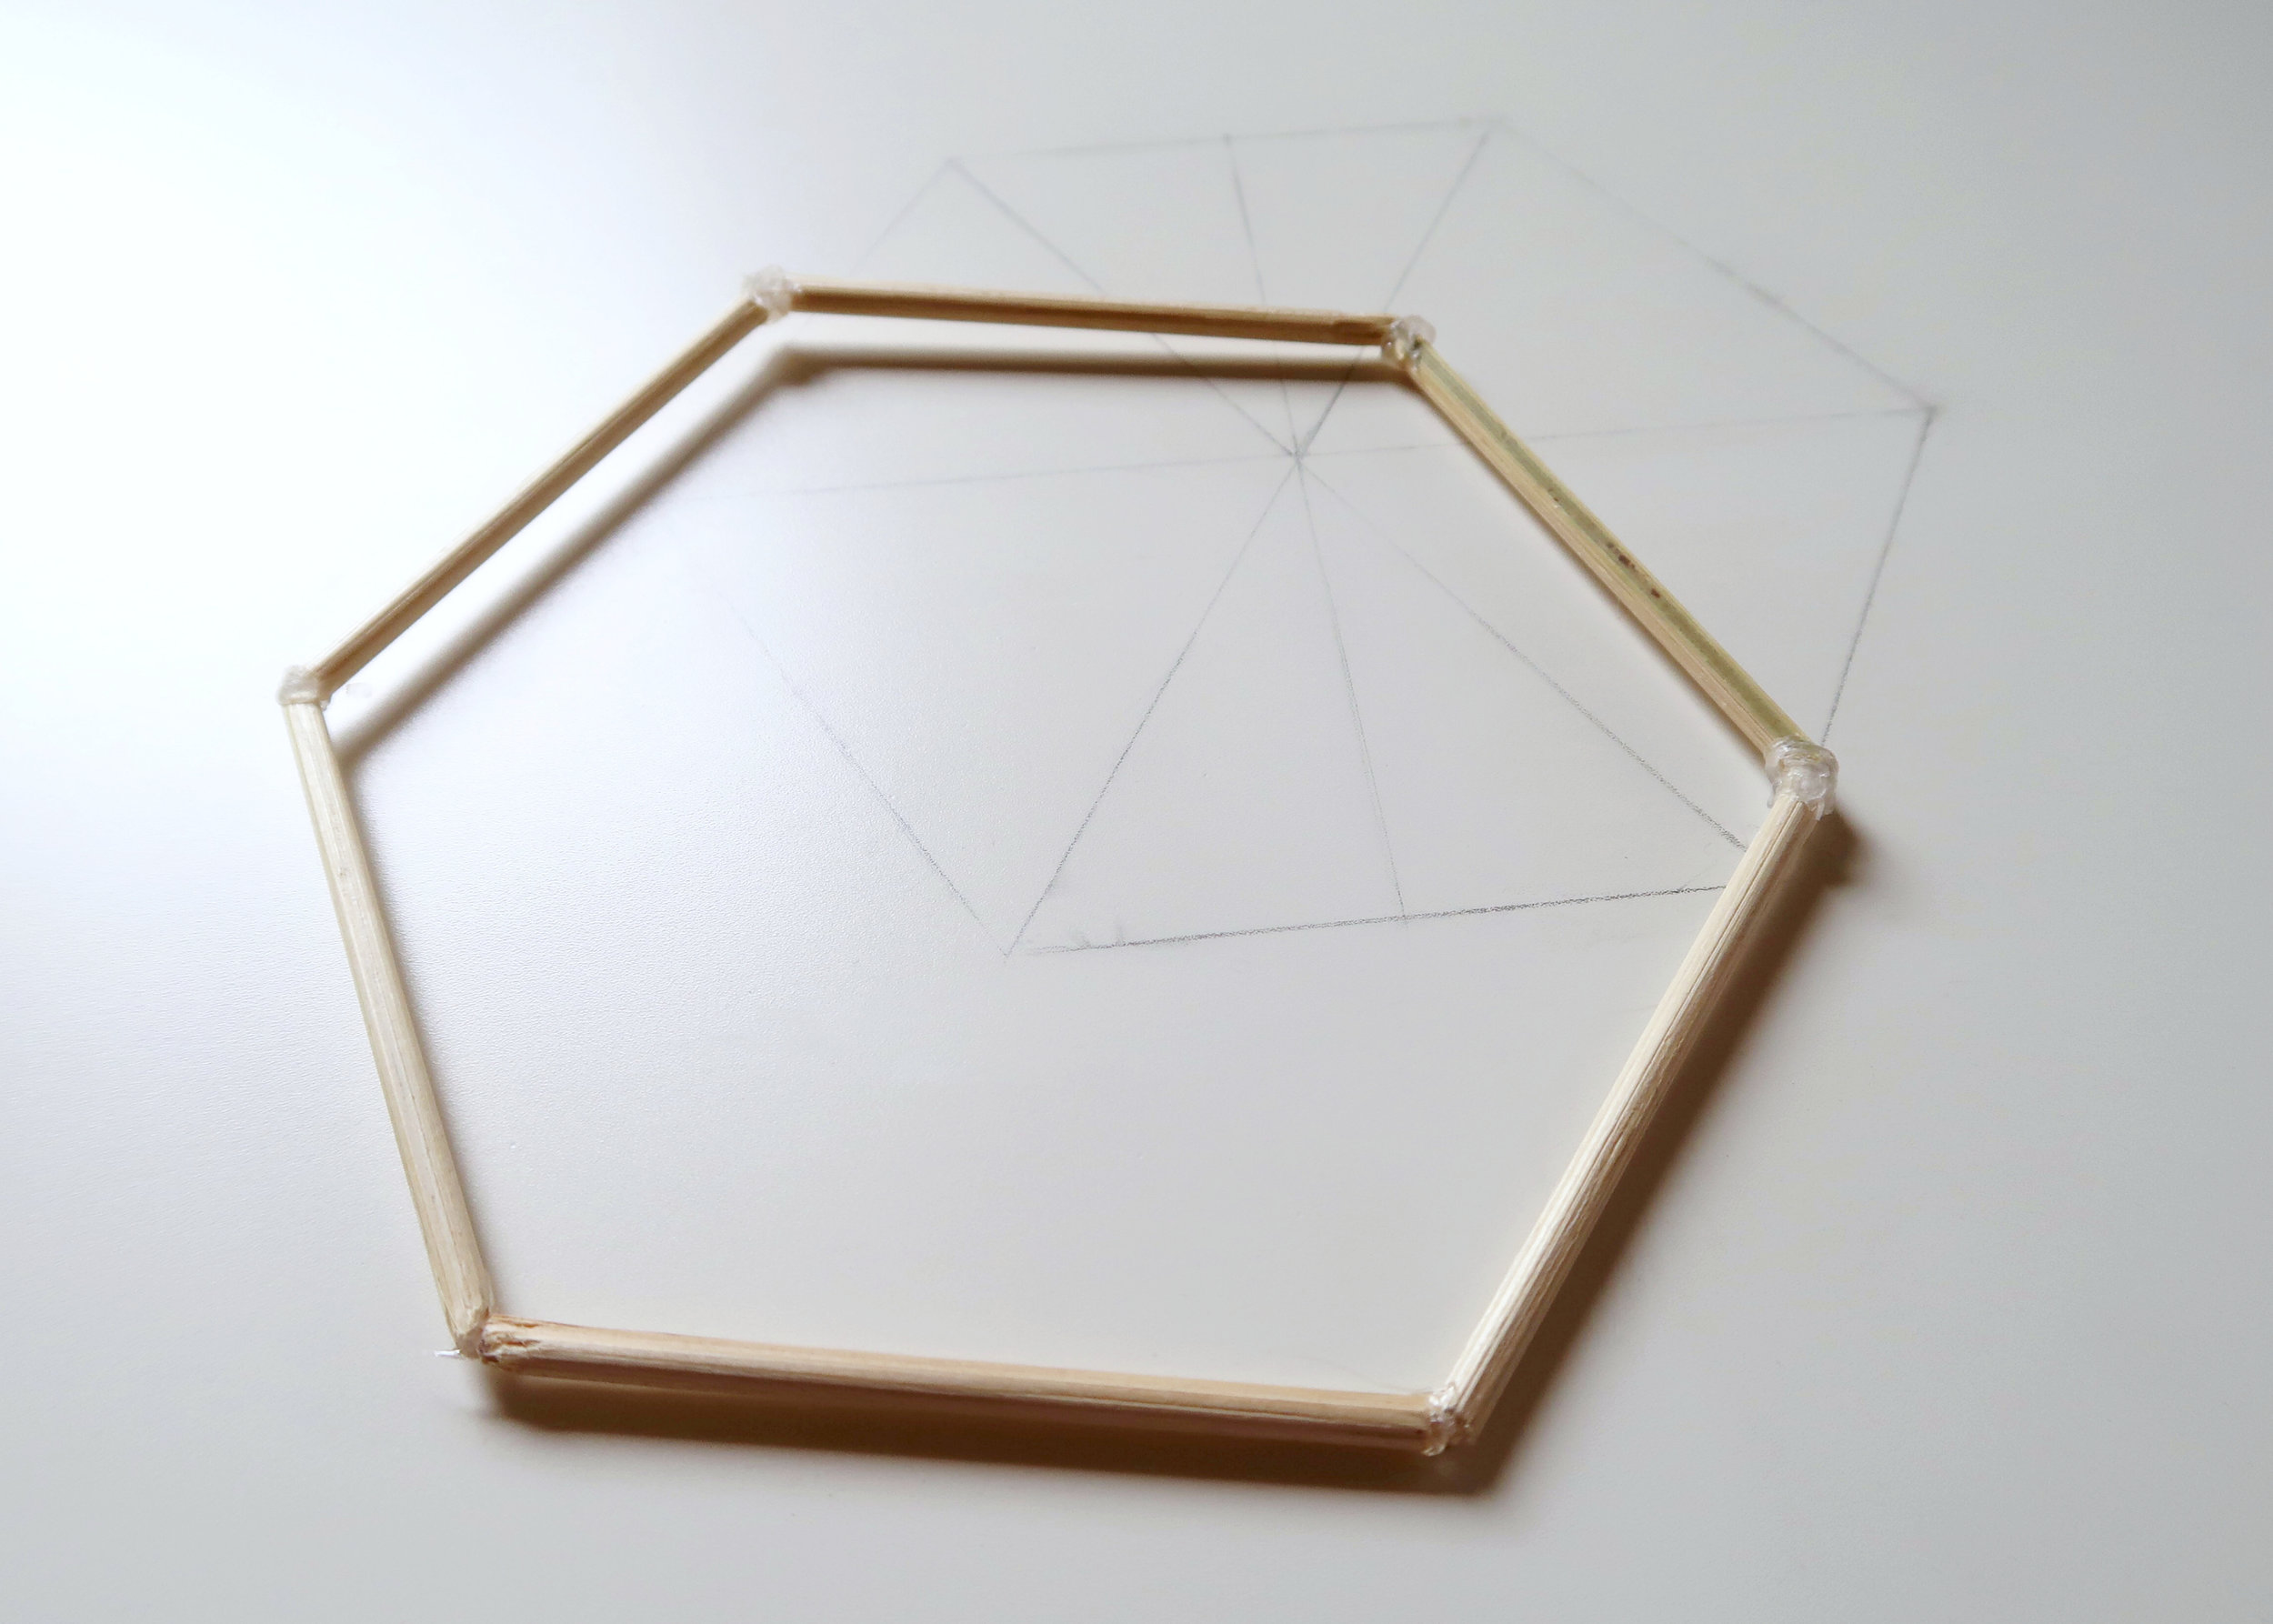 3. - Repeat this process all the way around until you have closed the shape and have a nice sturdy hexagon with 6cm sides. You'll need two hexagons of this size, as these will form the top and bottom of the light shade so once you've done one, crack on with another!